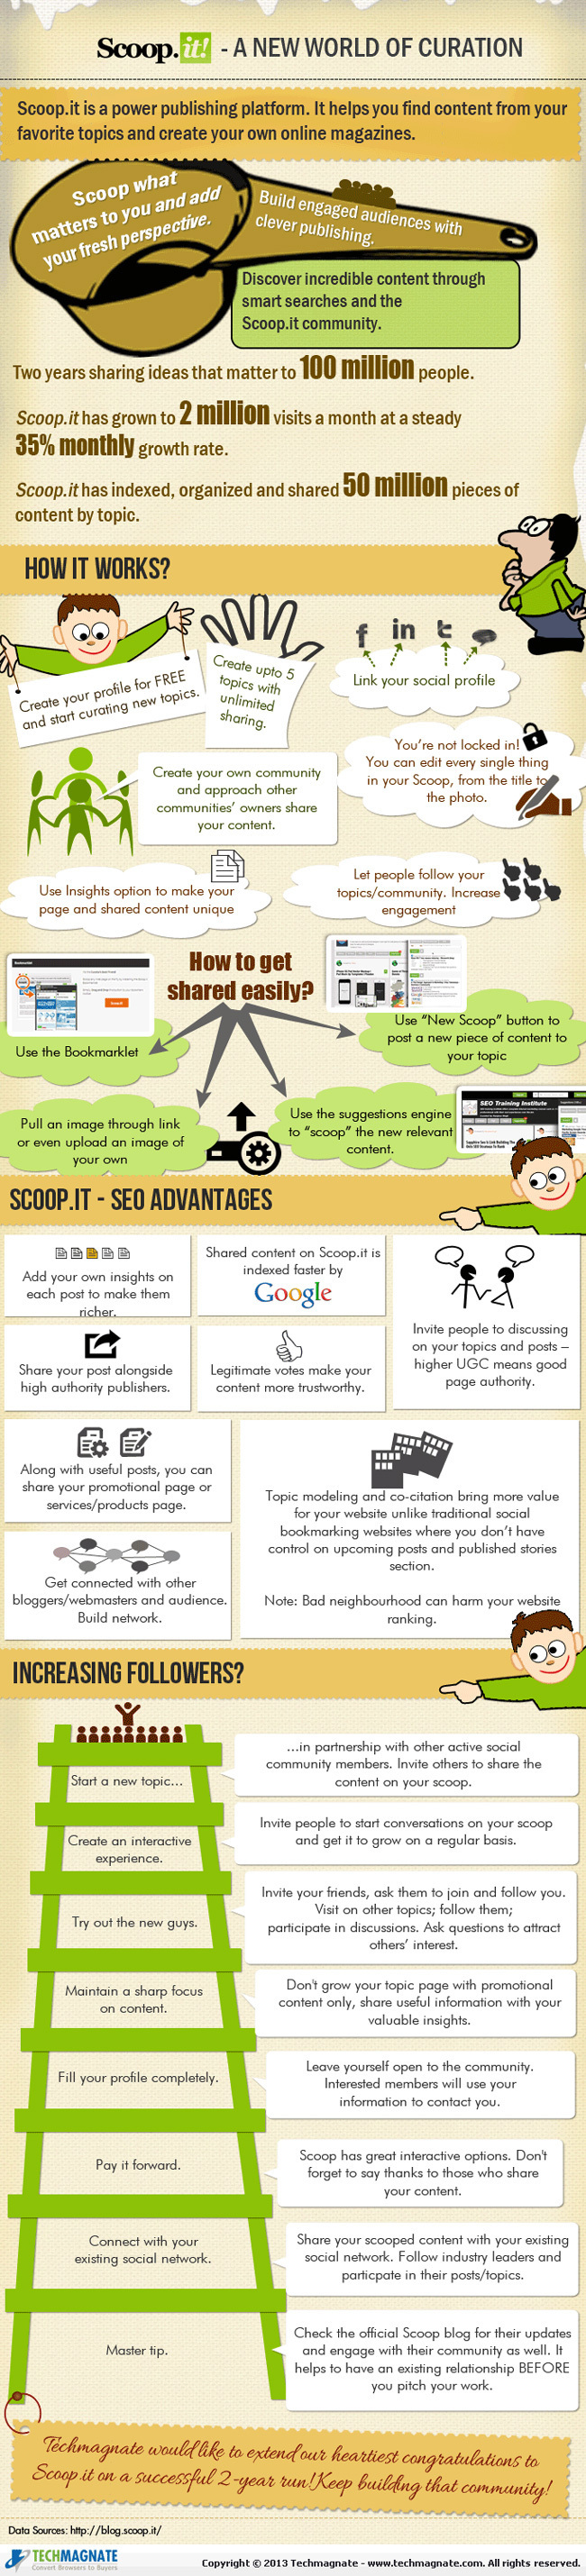 Scoop.It for SEO - A New World of Curation [Inf...